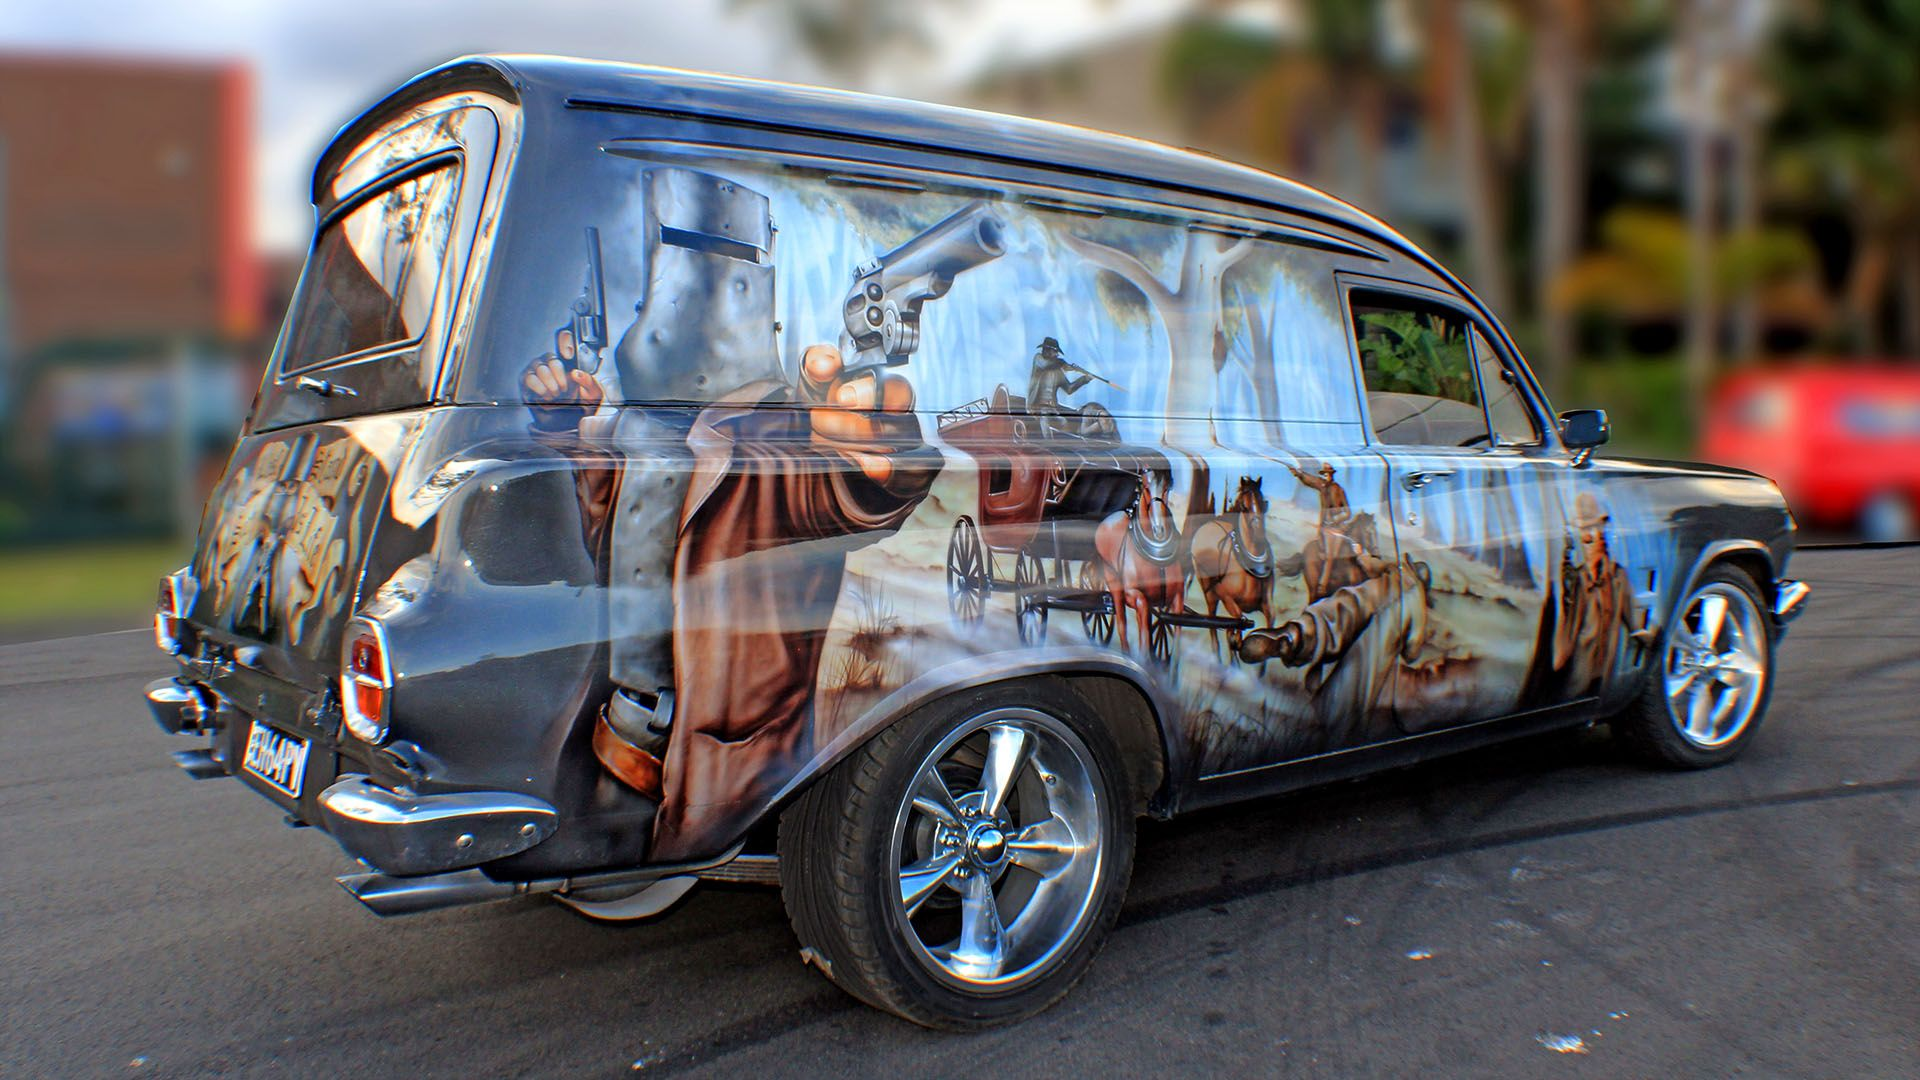 Image result for wolf airbrush car Car painting